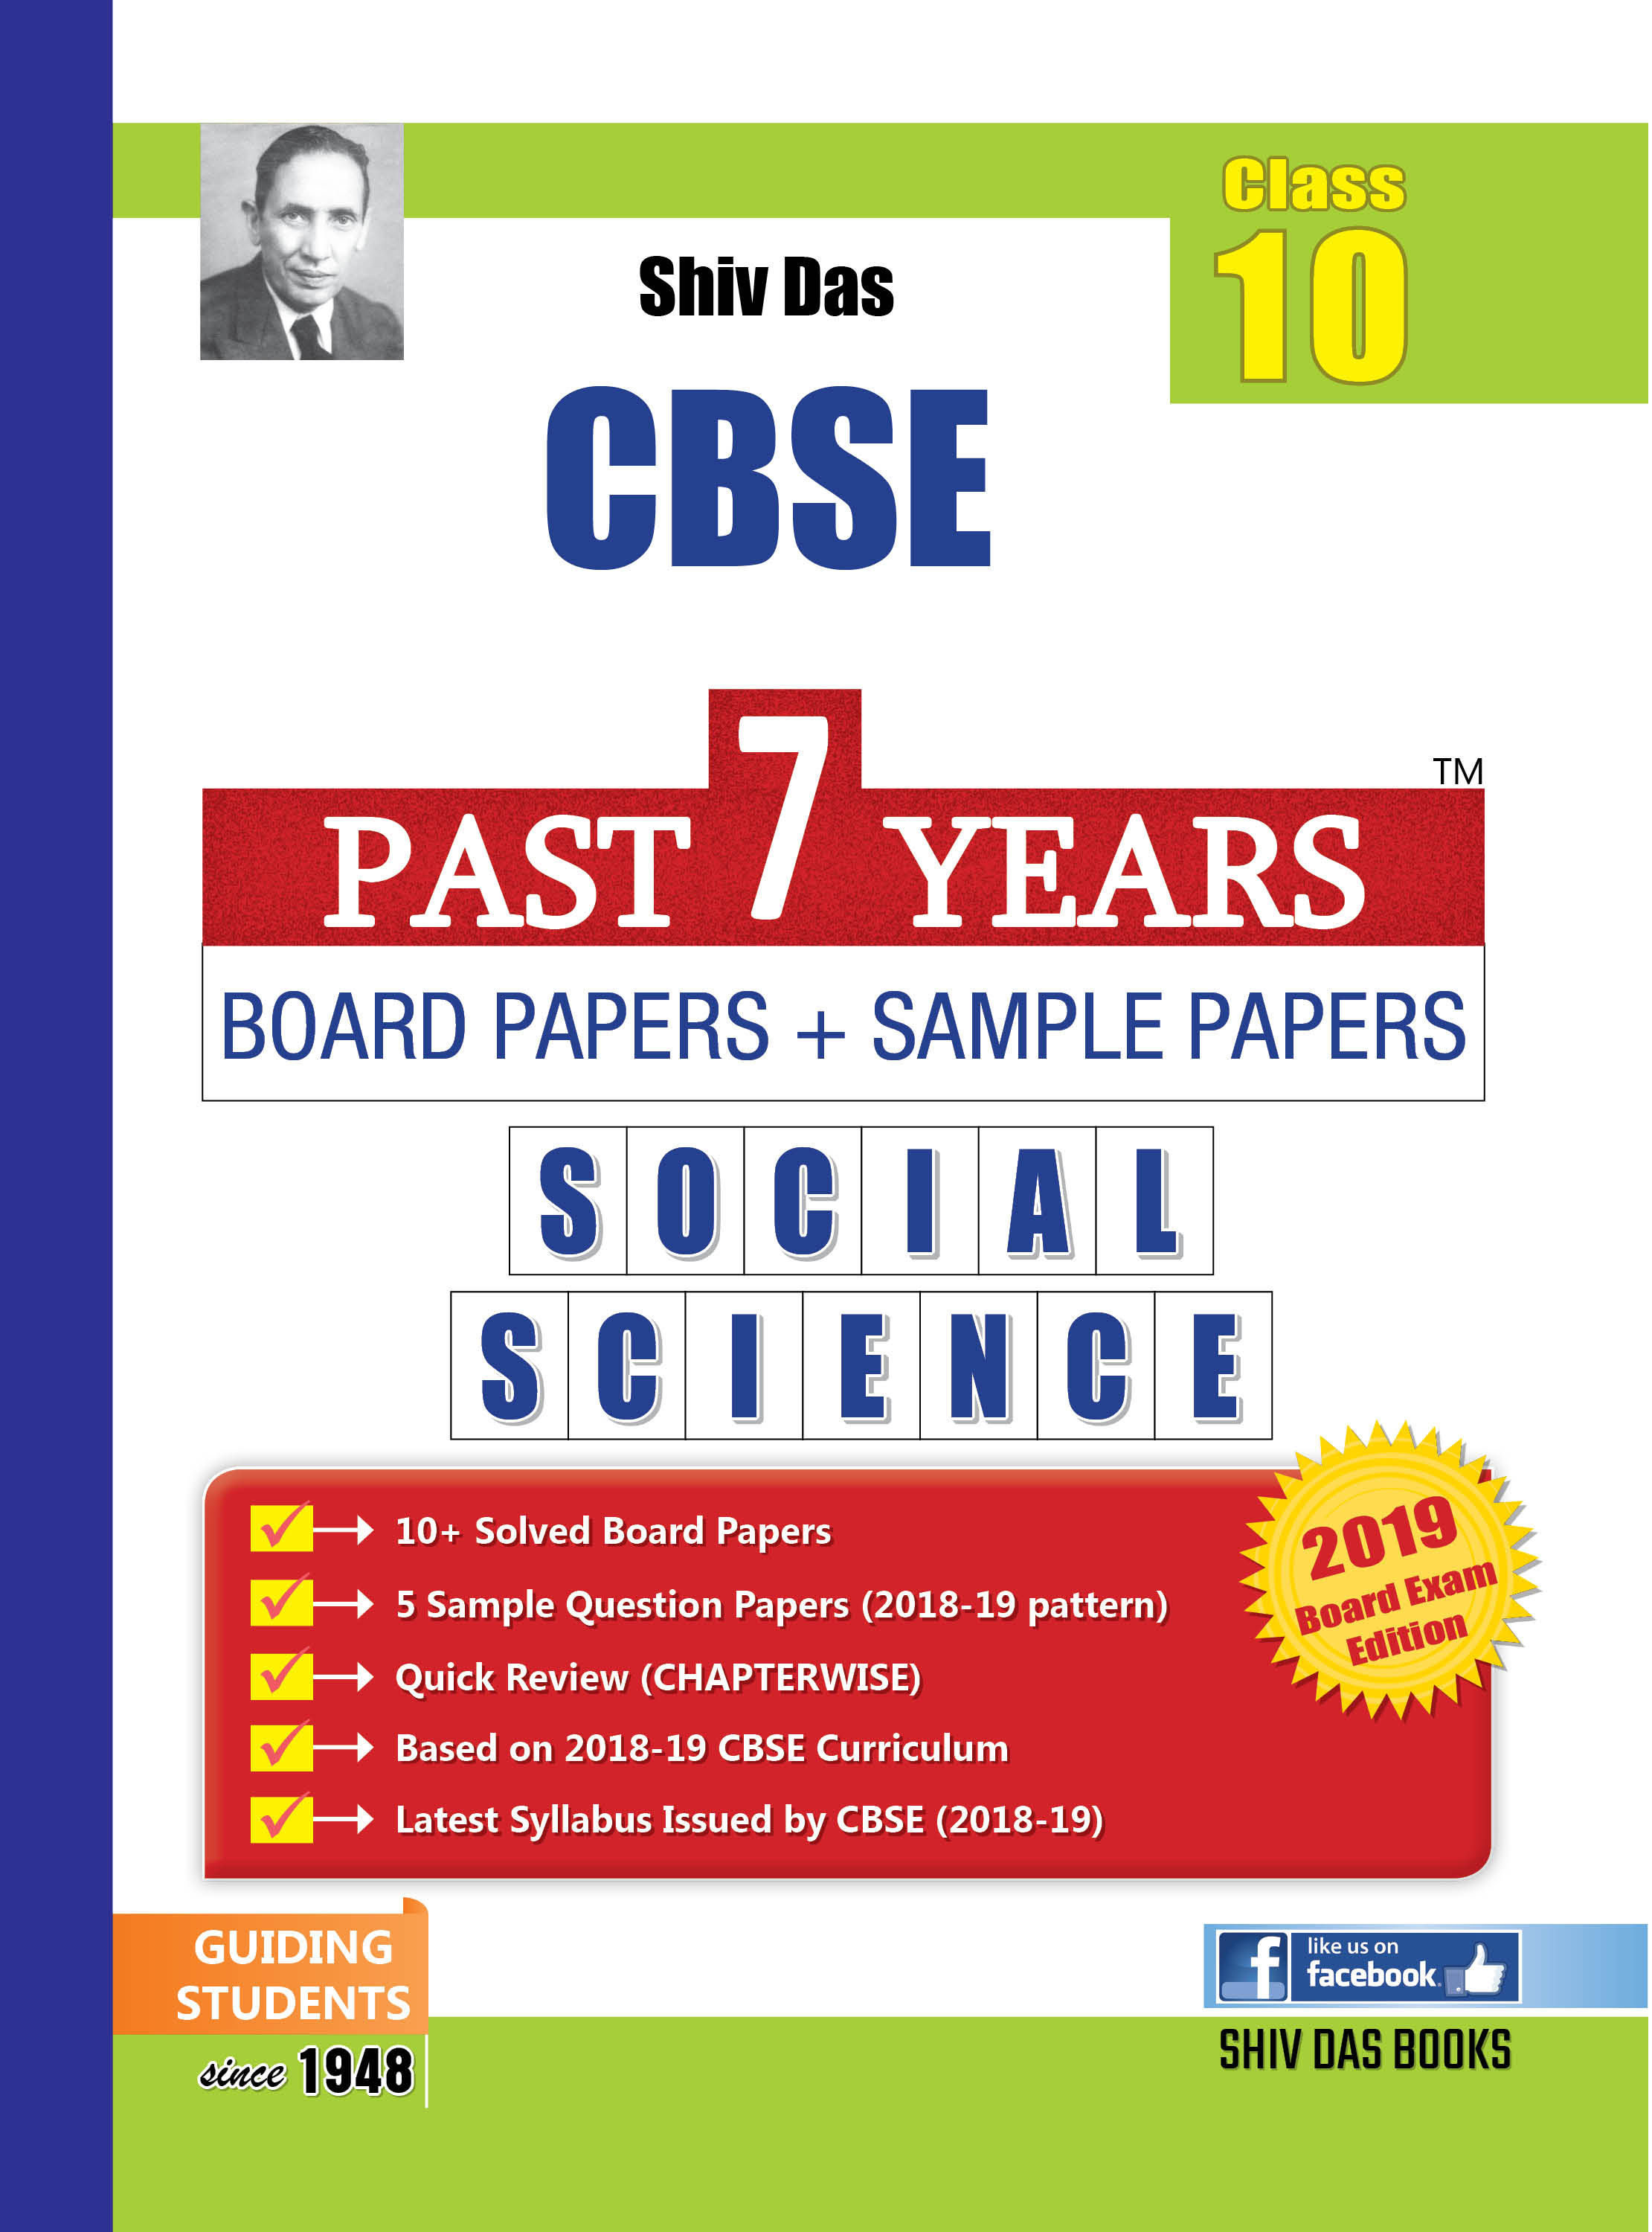 CBSE Past 7 Years Solved Board Papers+Sample Papers for Class 10 Social Science (2019 Board Exam Edition)